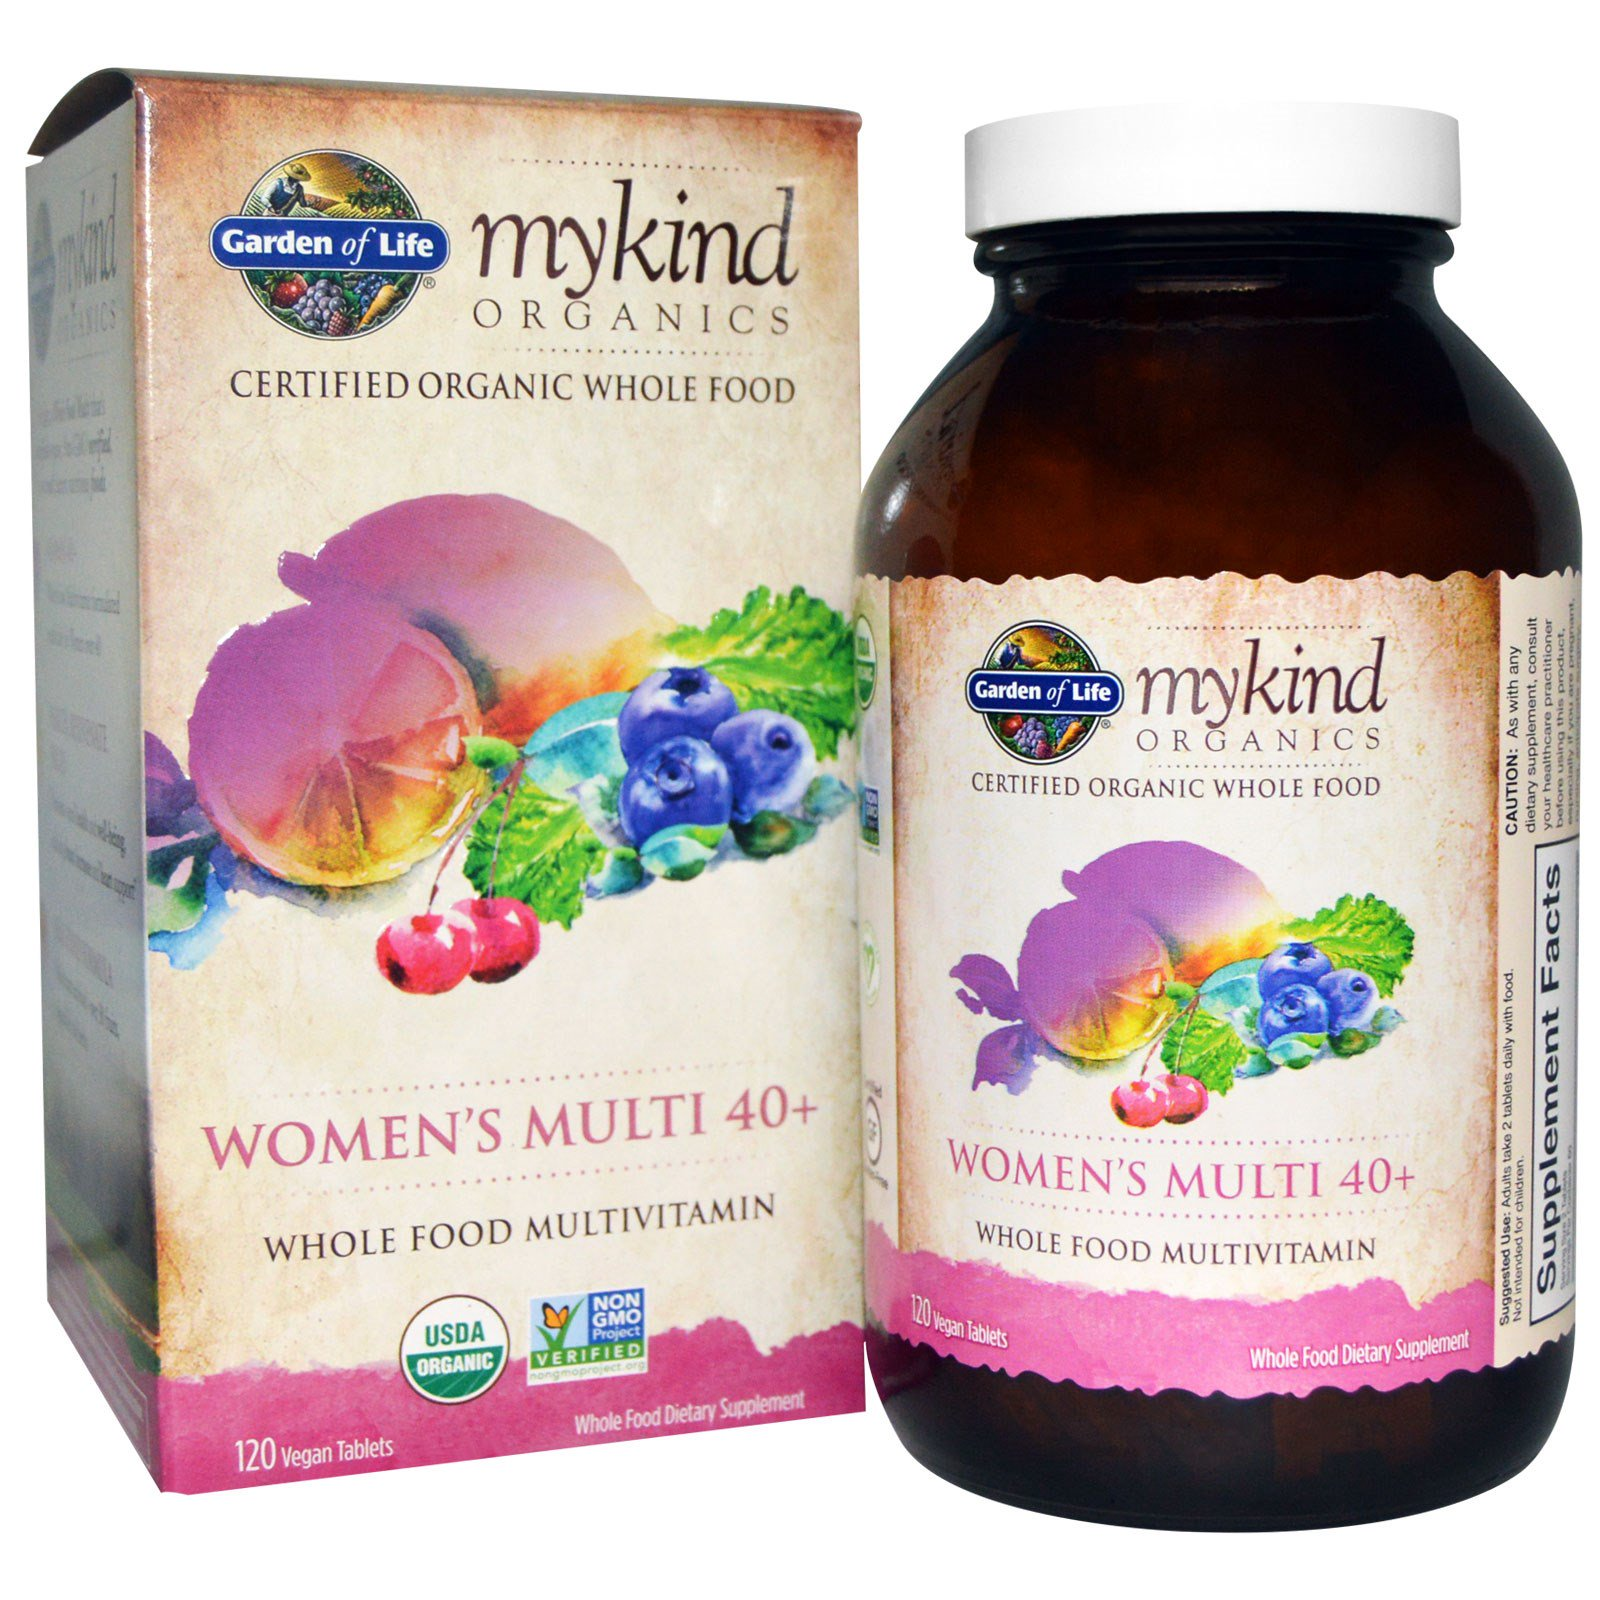 garden of life organic womens multi 40 whole food multivitamin 120 vegan tablets - Garden Of Life Multivitamin